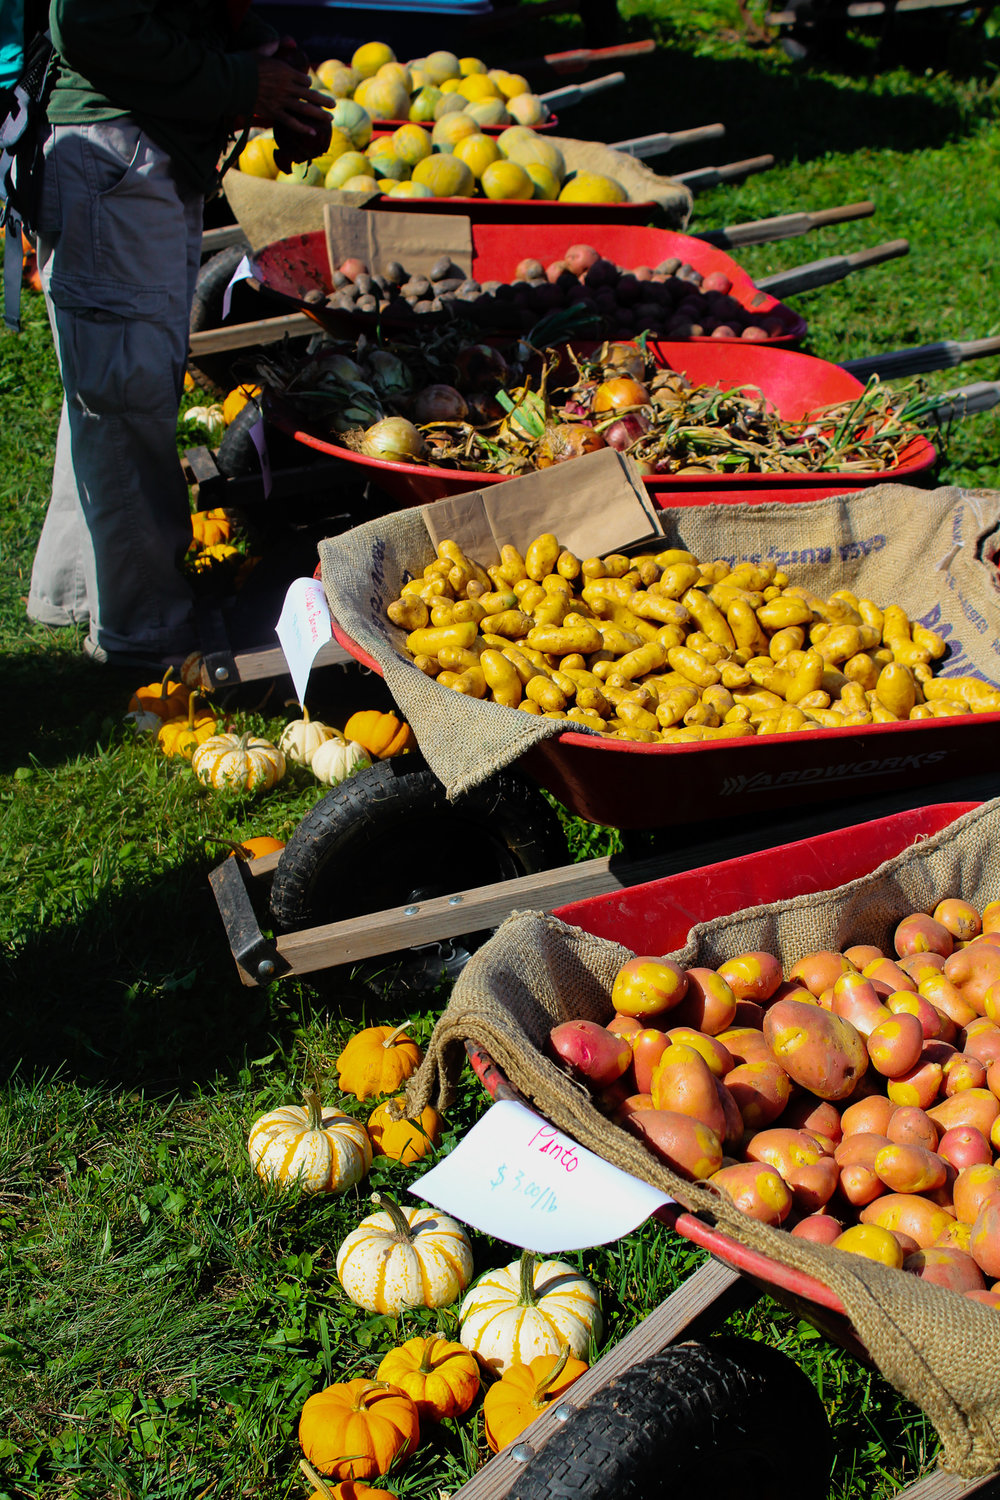 Fresh produce for sale. Photo by Morgan Pint